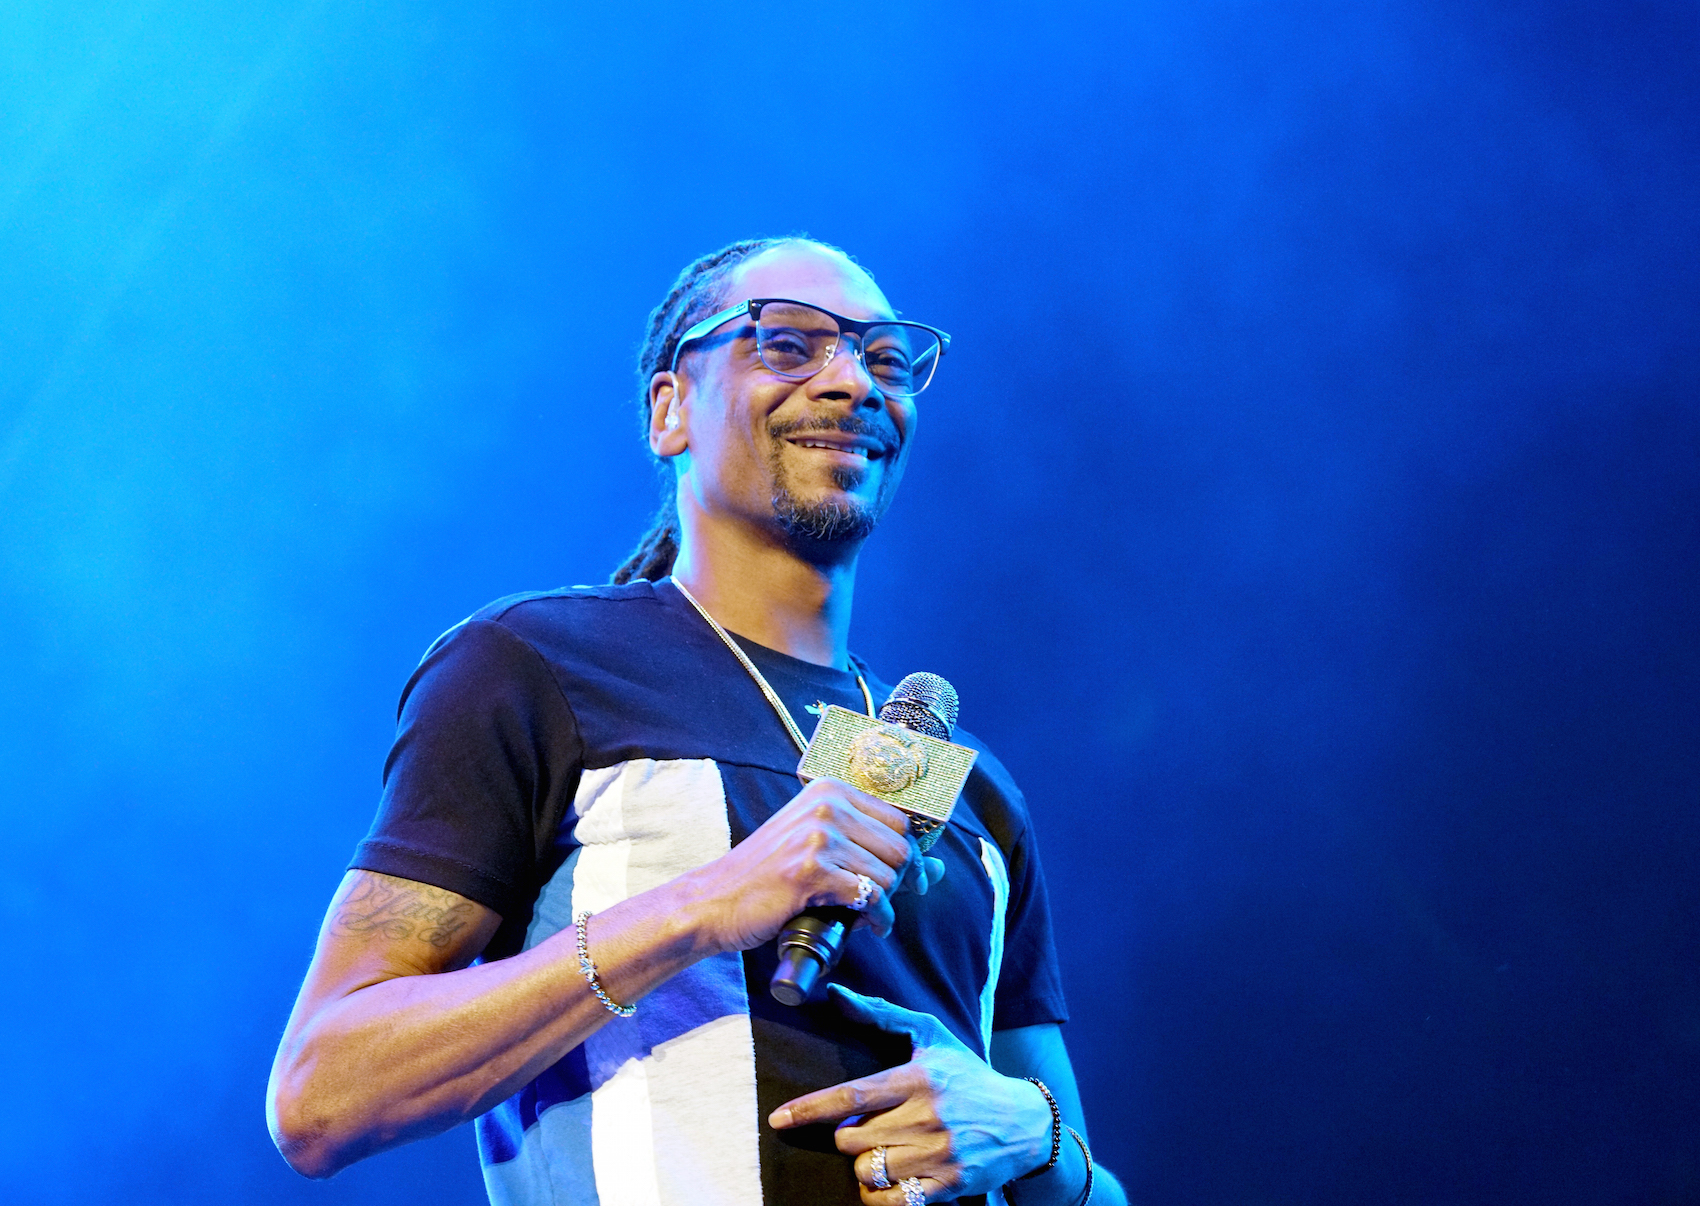 Snoop Dogg Says a Collaboration With Bad Bunny is Coming